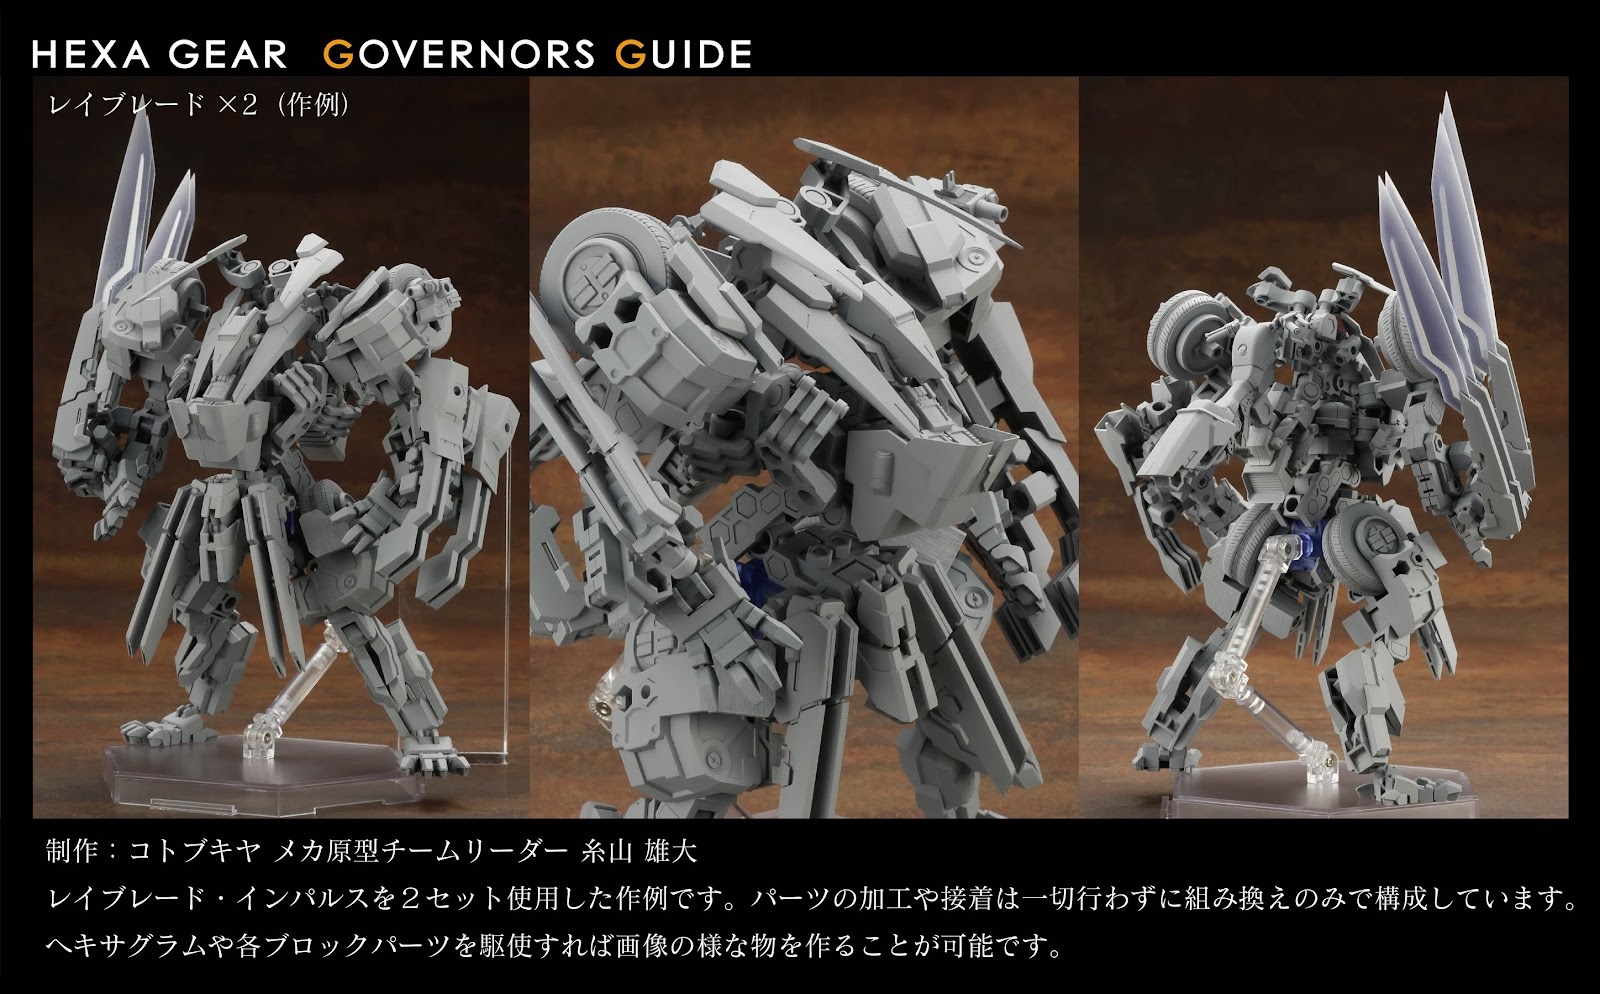 Hexa Gear Governors Guide